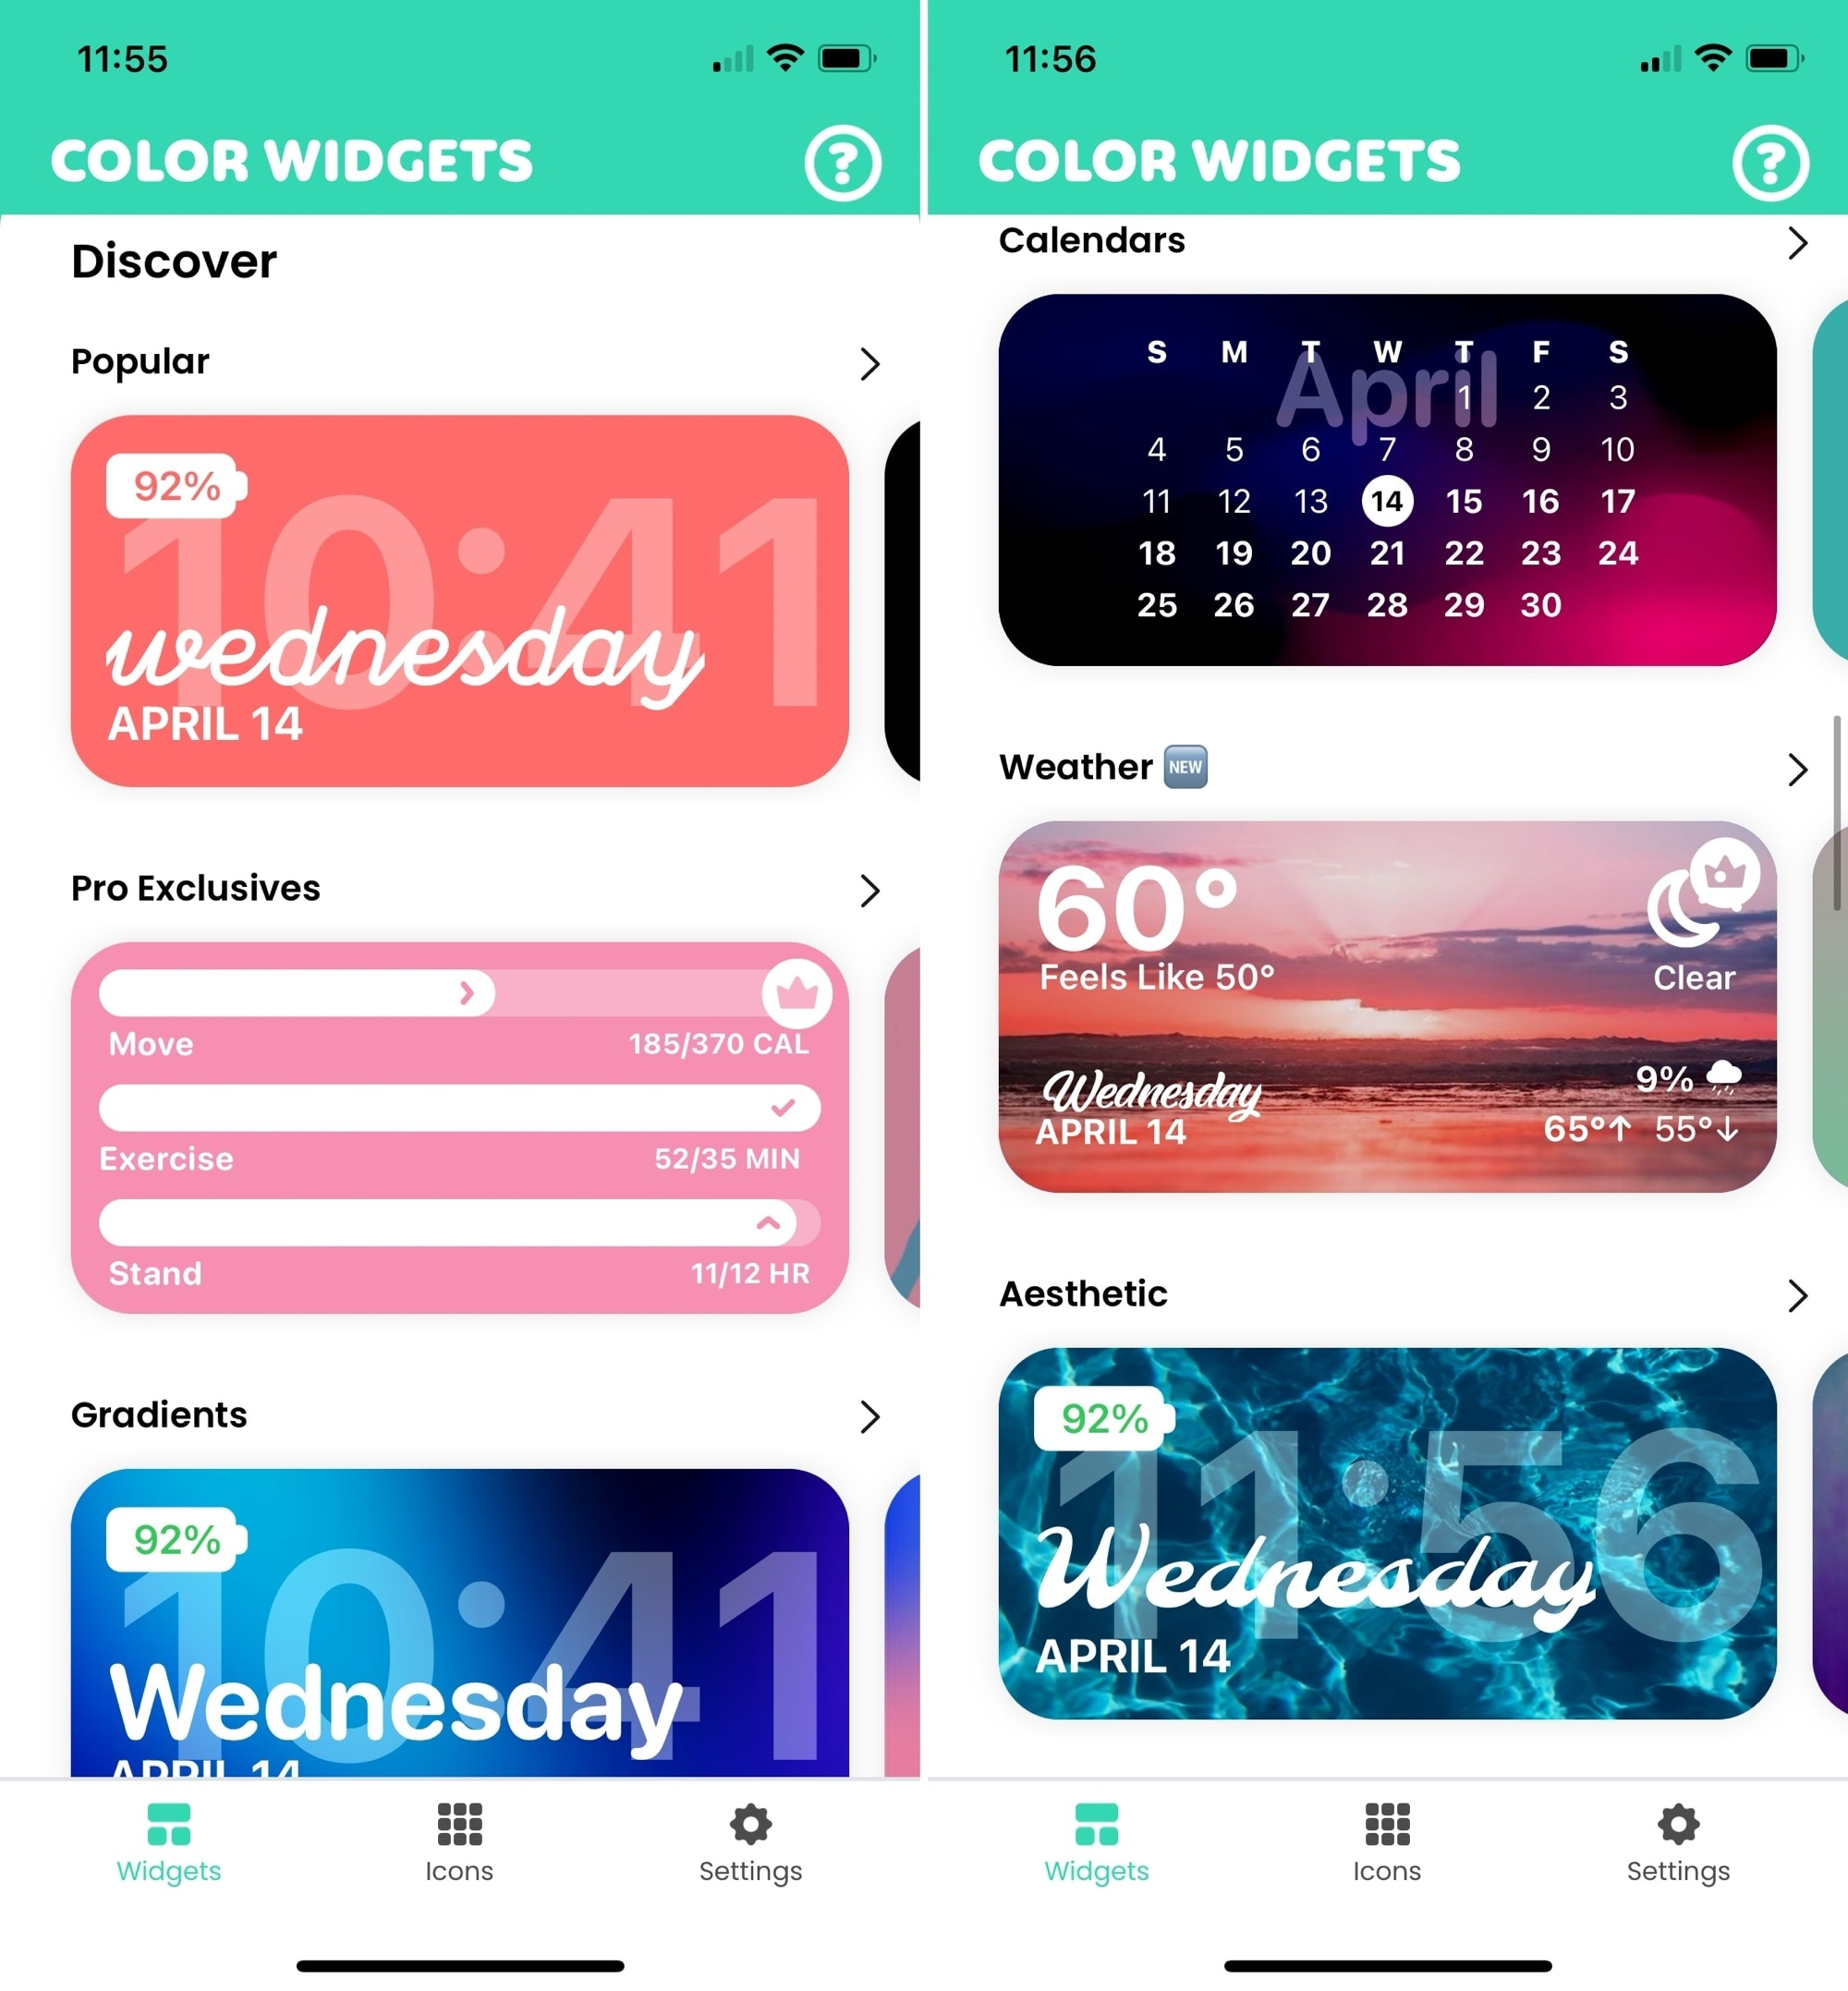 Color Widgets For iPhone